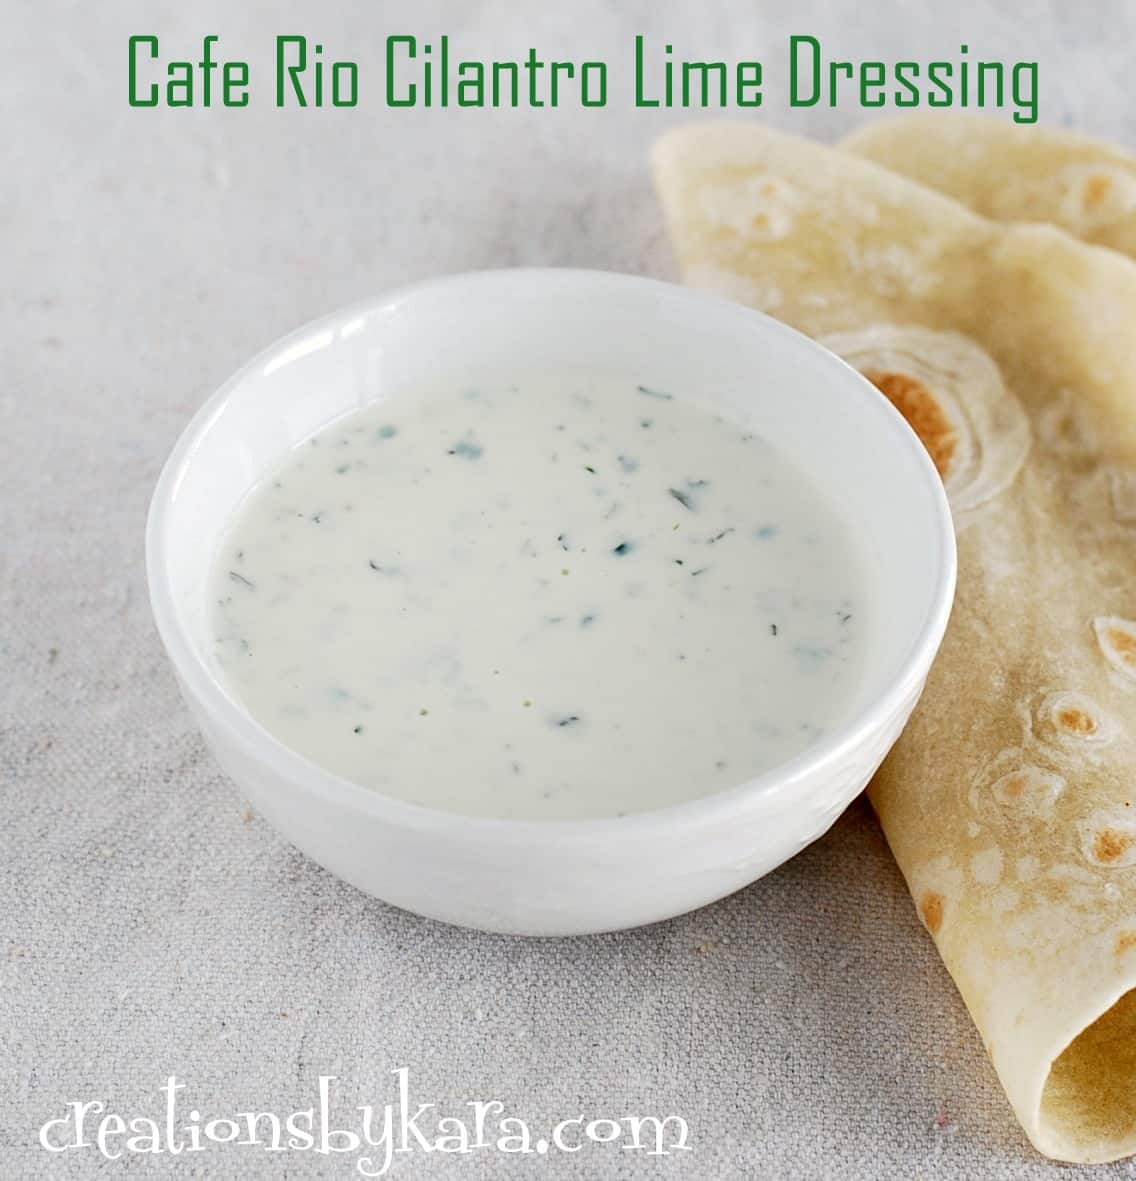 cilantro-lime-dressing, recipe